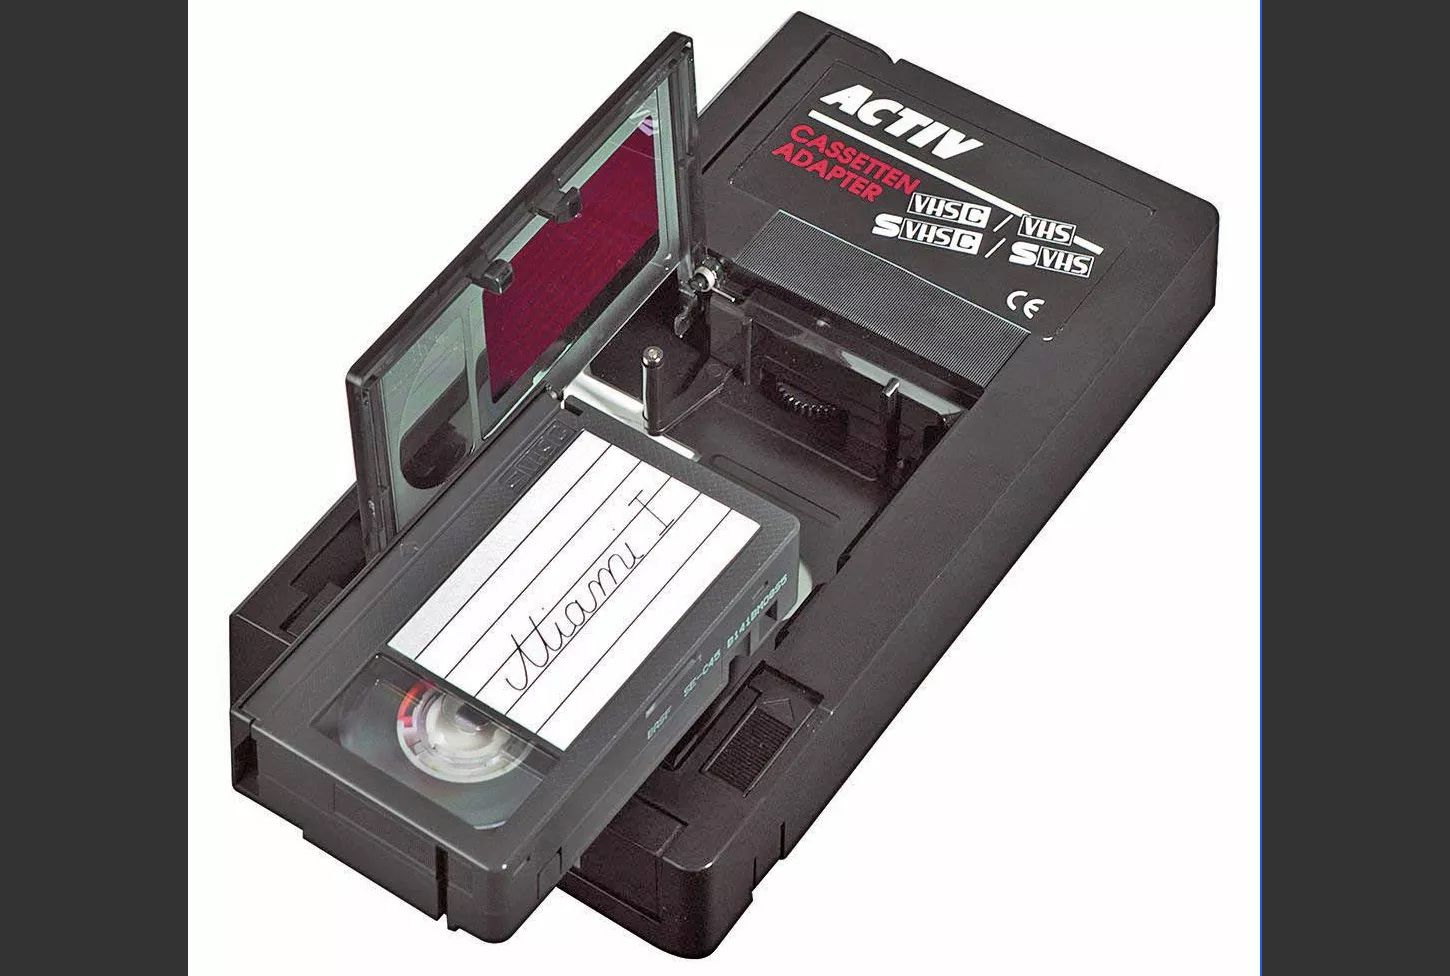 Is There A Vhs Adapter For 8mm Tapes